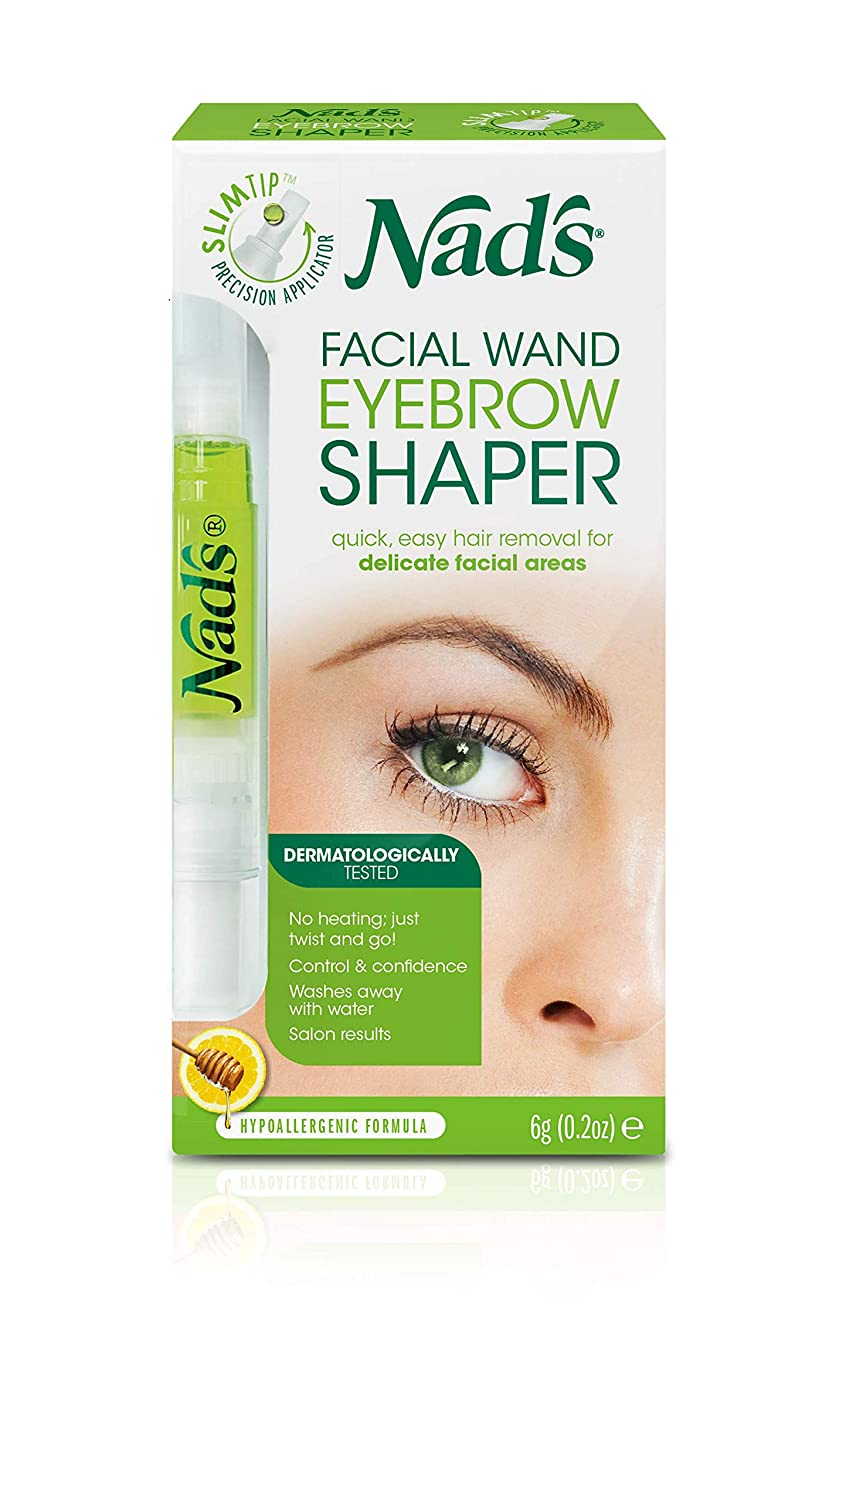 Nad's Eyebrow Wax Kit - Hair Removal Waxing Kit For Delicate Facial Areas, Facial Wand Shaper + Strips + Wipes; 0.2 oz (6g)